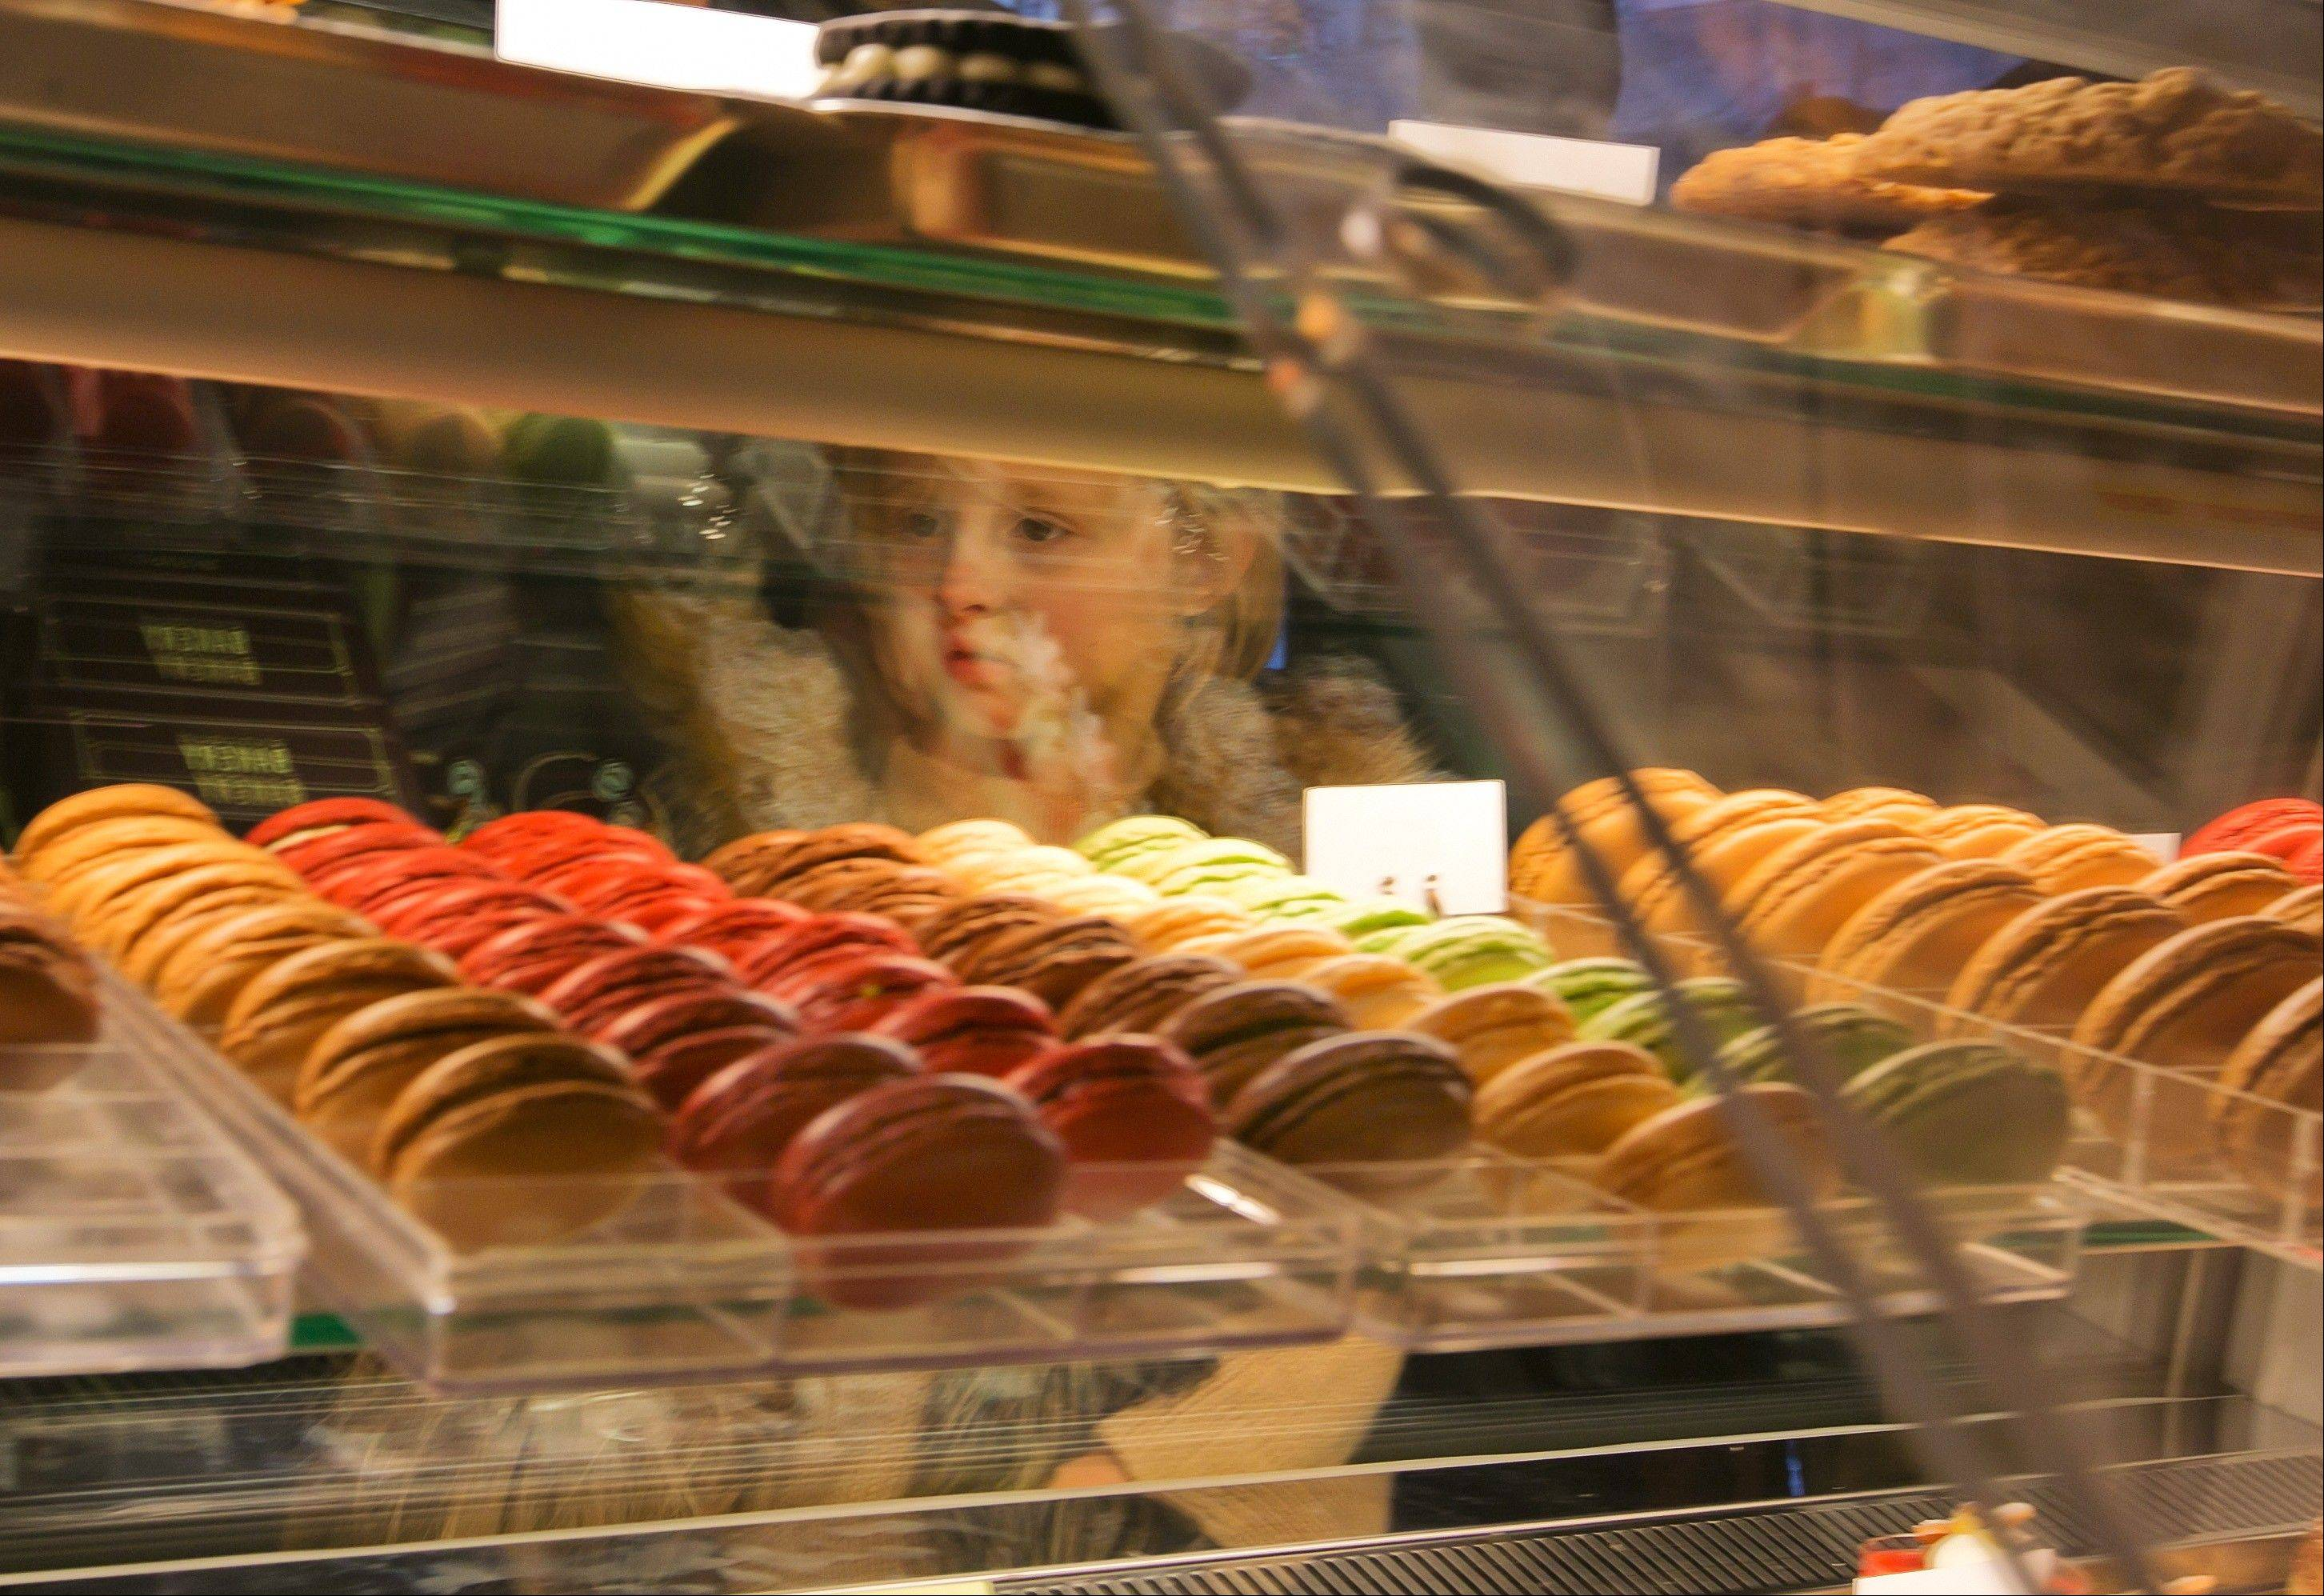 Mini-macarons at Bouchon Bakery in New York's Rockefeller Center cost only 50 cents.